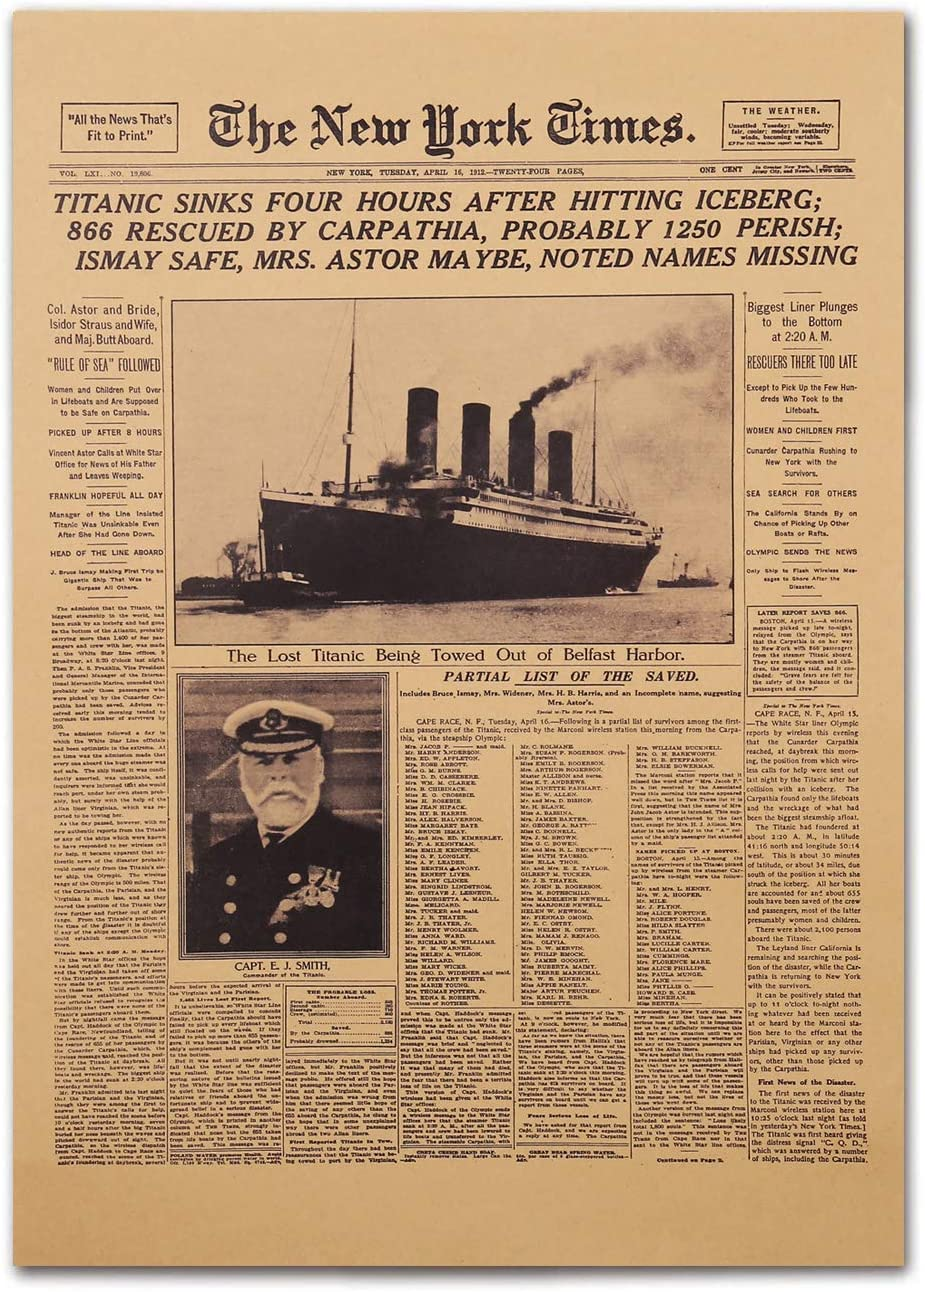 Vintage Newspaper Posters Front Sheet Page Titanic Disaster 1912 New York Times 20 x 14 Inch Unframed Kraft Paper Retro Poster Western Art Prints Home Decor Posters Under 10 Dollars